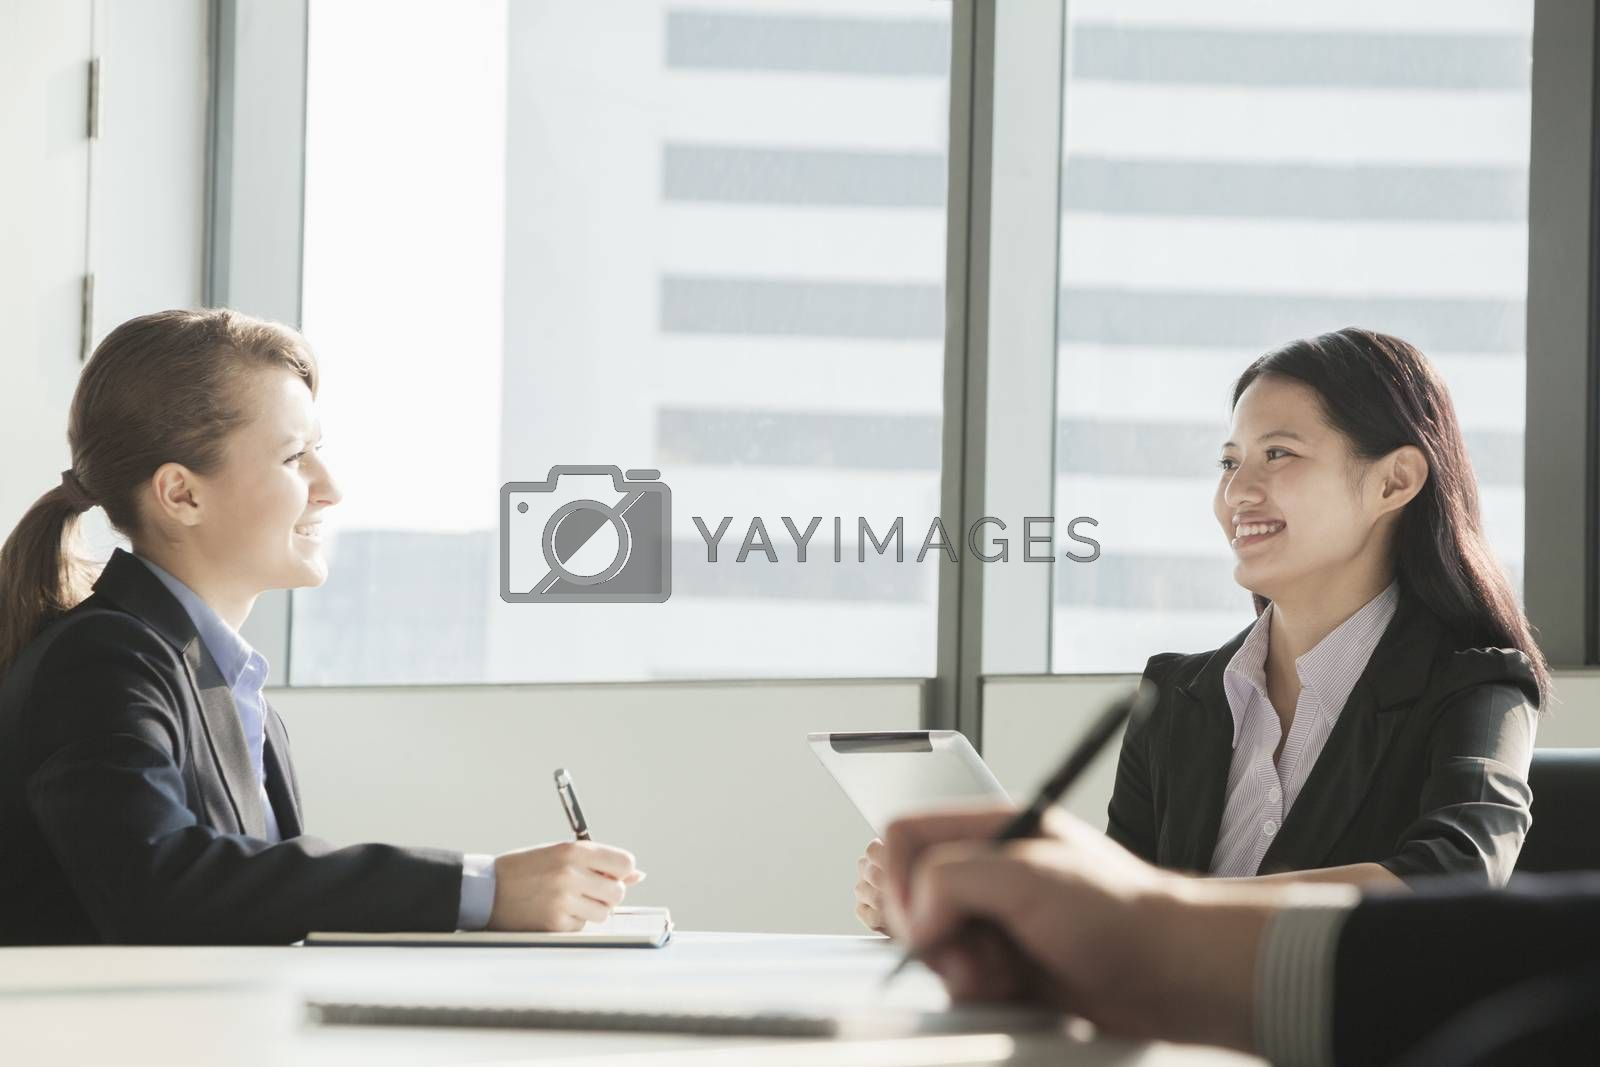 Two businesswomen smiling and looking at each other during a business meeting